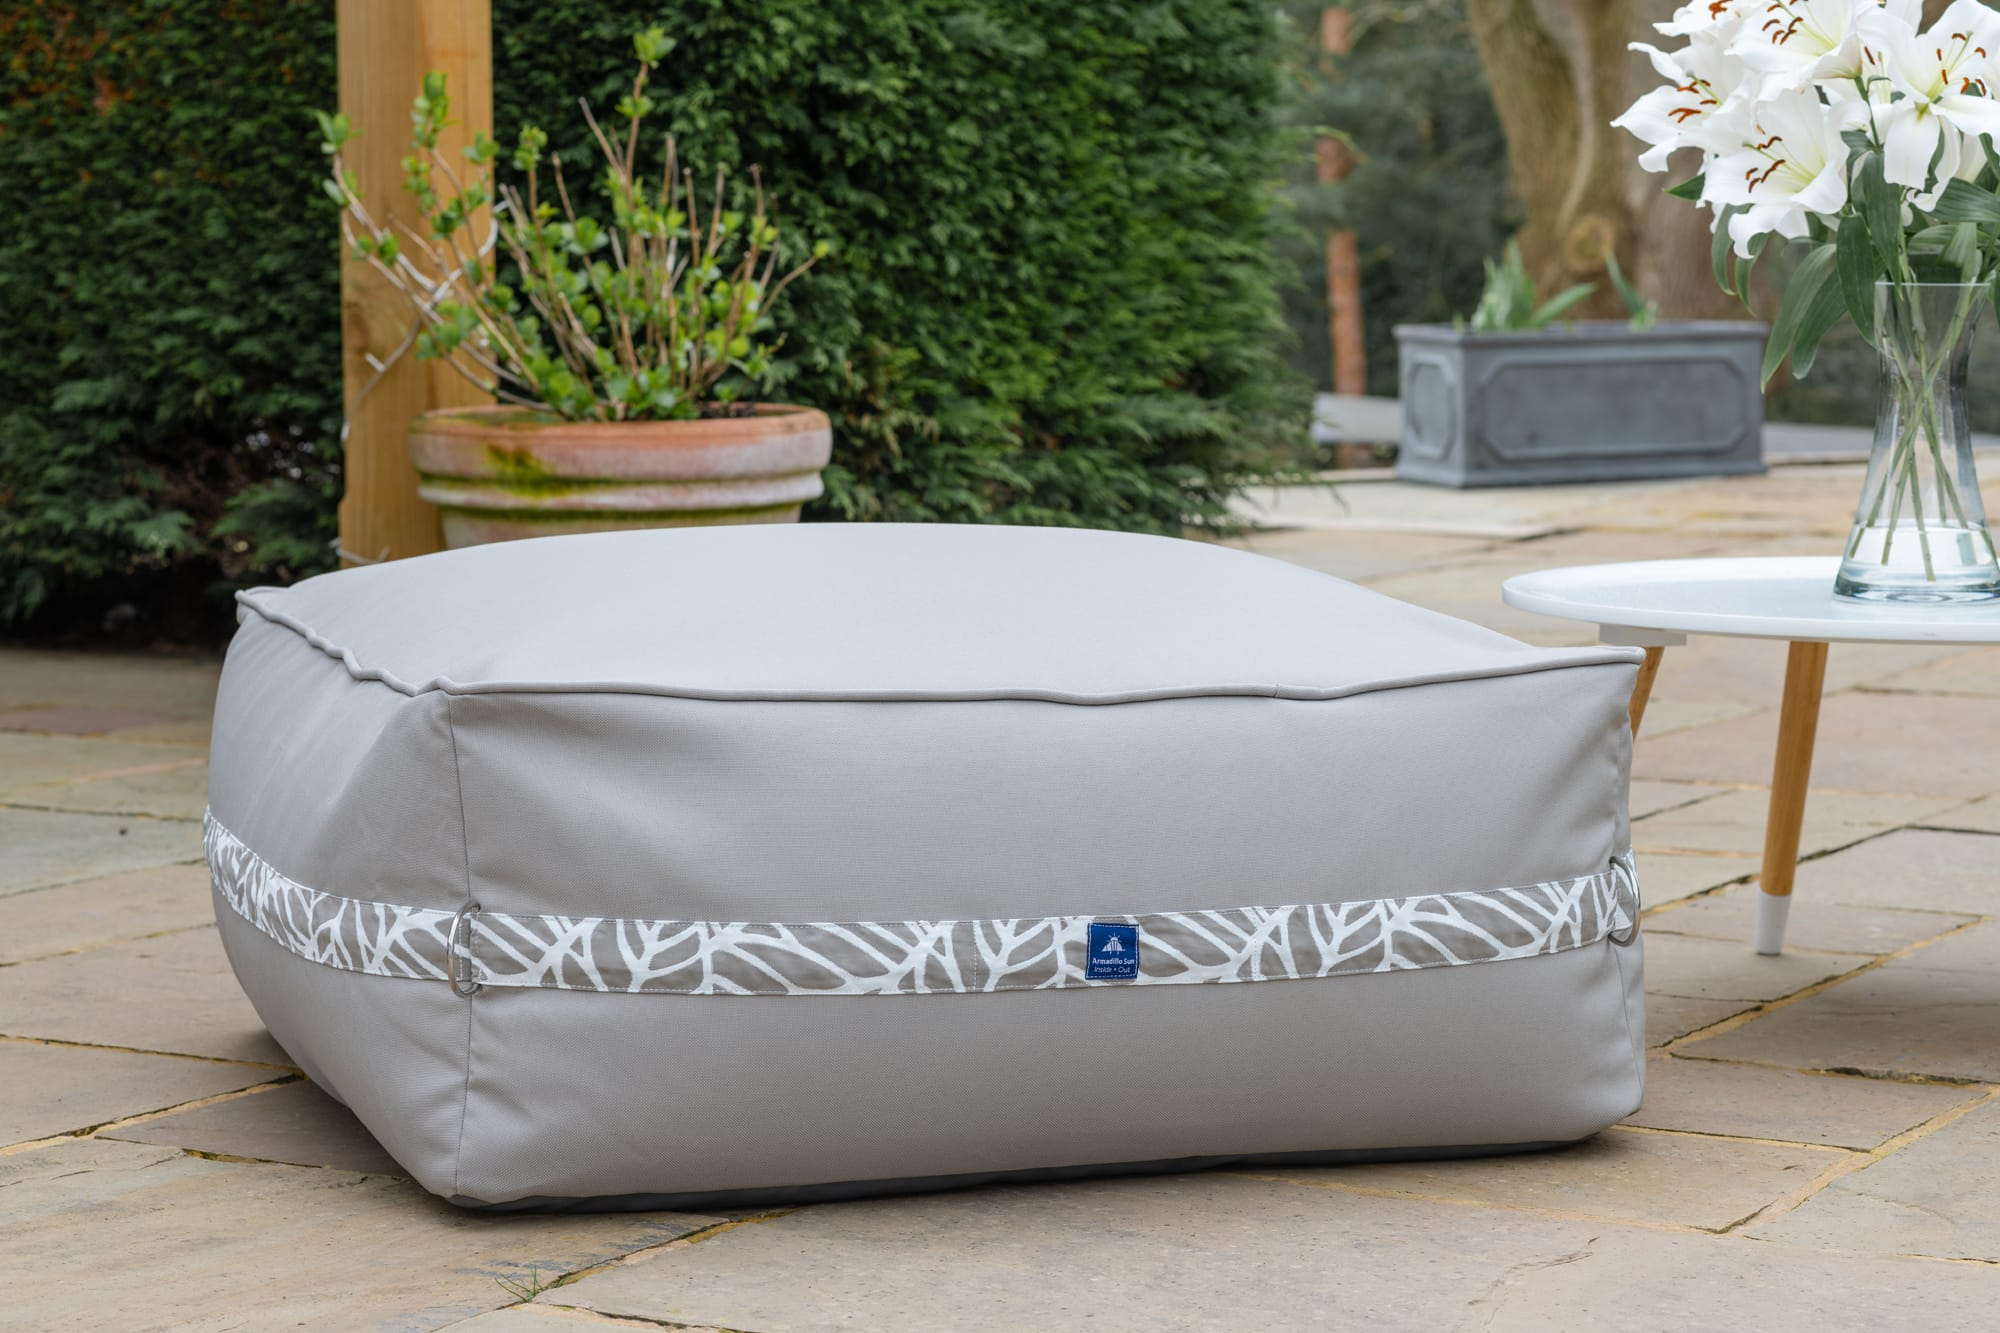 Monaco Modular Bean Bag Ottoman in Pumice with Palm Patterned Straps